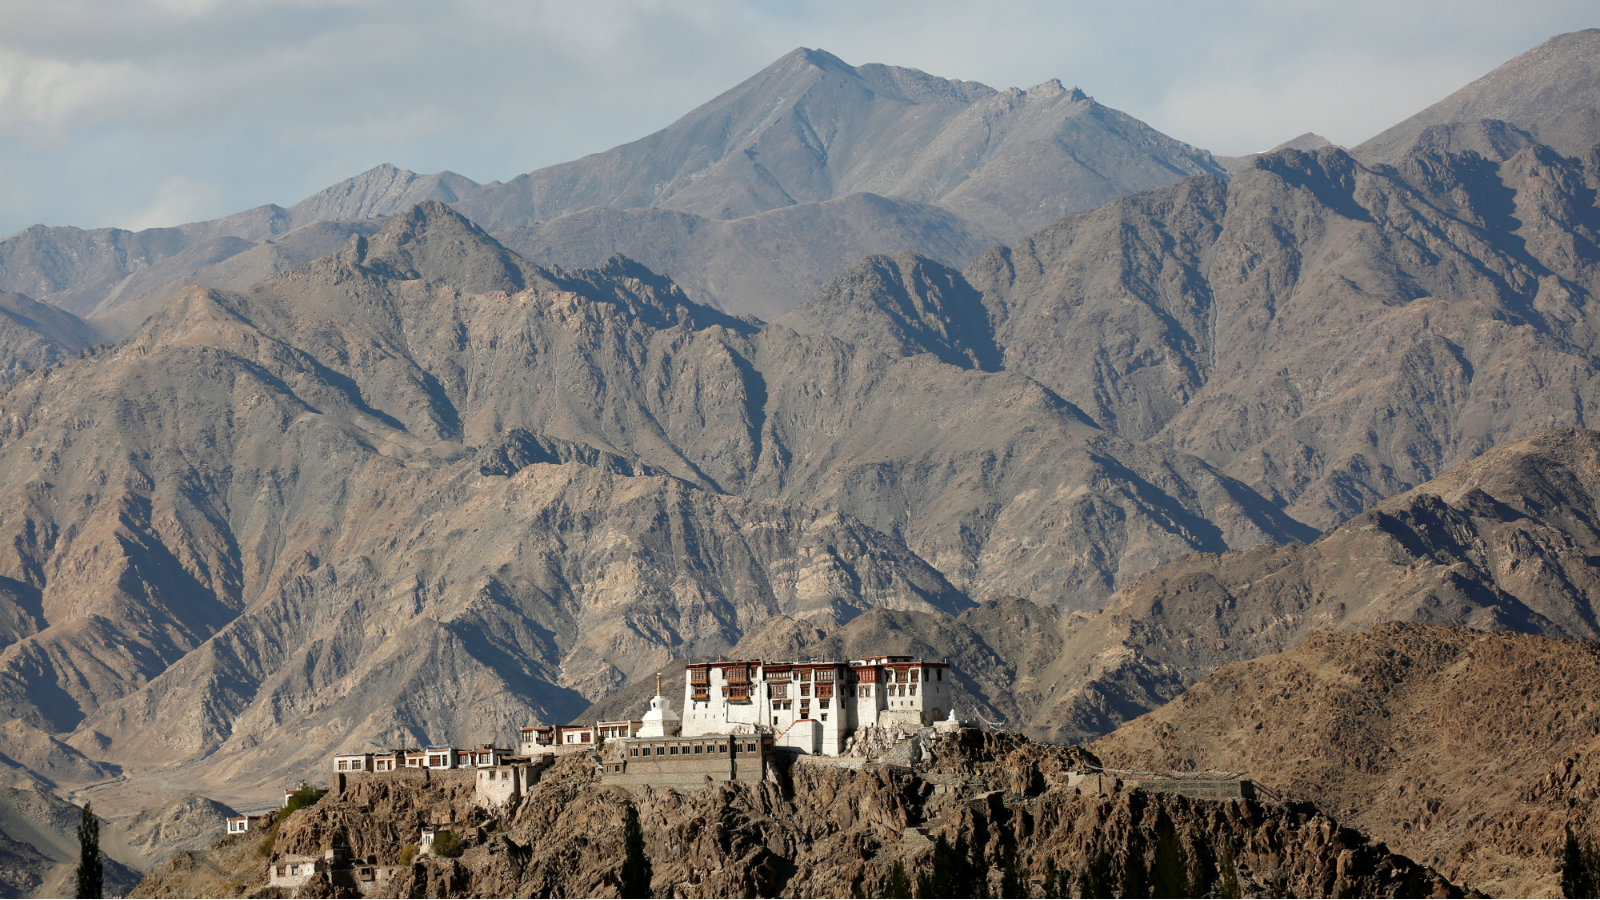 Stakna monastery catches the evening light near Leh, the largest town in the region of Ladakh, nestled high in the Indian Himalayas, India September 27, 2016.